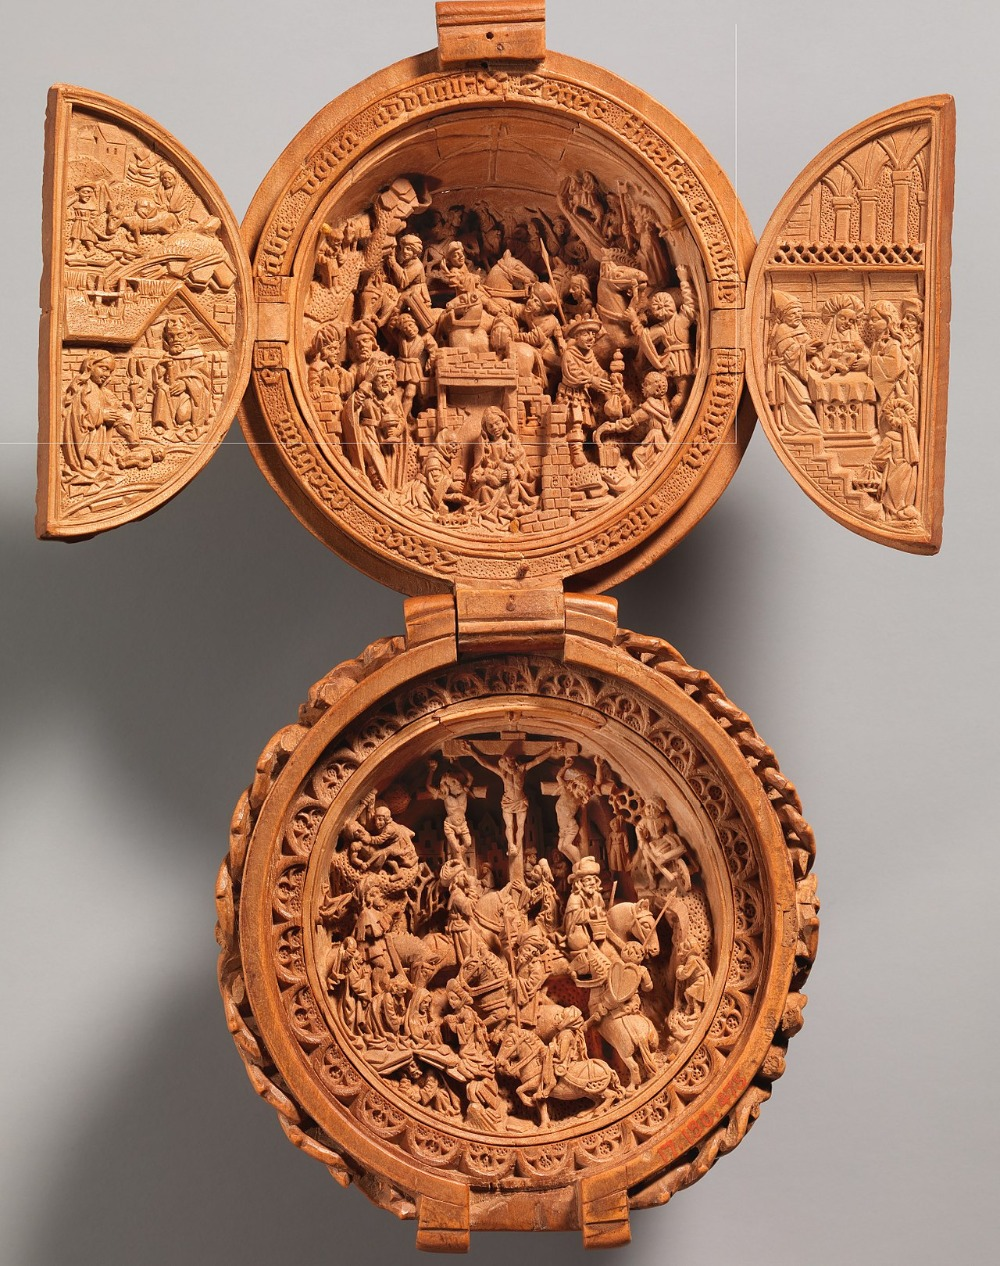 1280px-Prayer_Bead_with_the_Adoration_of_the_Magi_and_the_Crucifixion_MET_DP371962